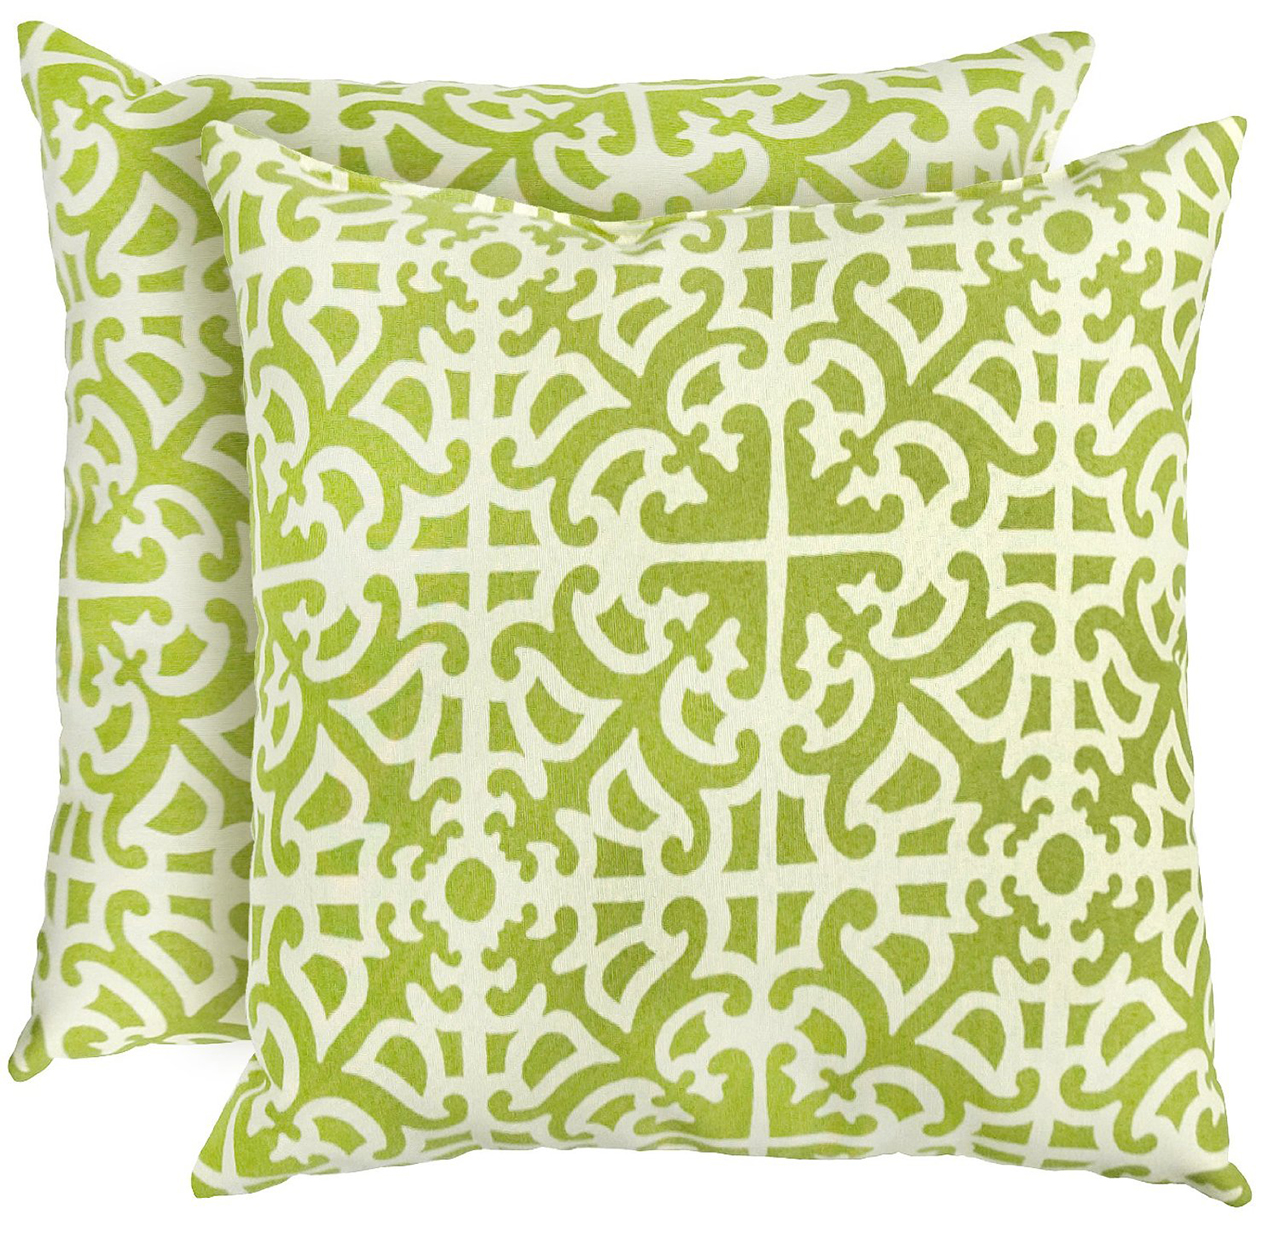 accent pillows with printed designs by greendale for indoors or outdoors